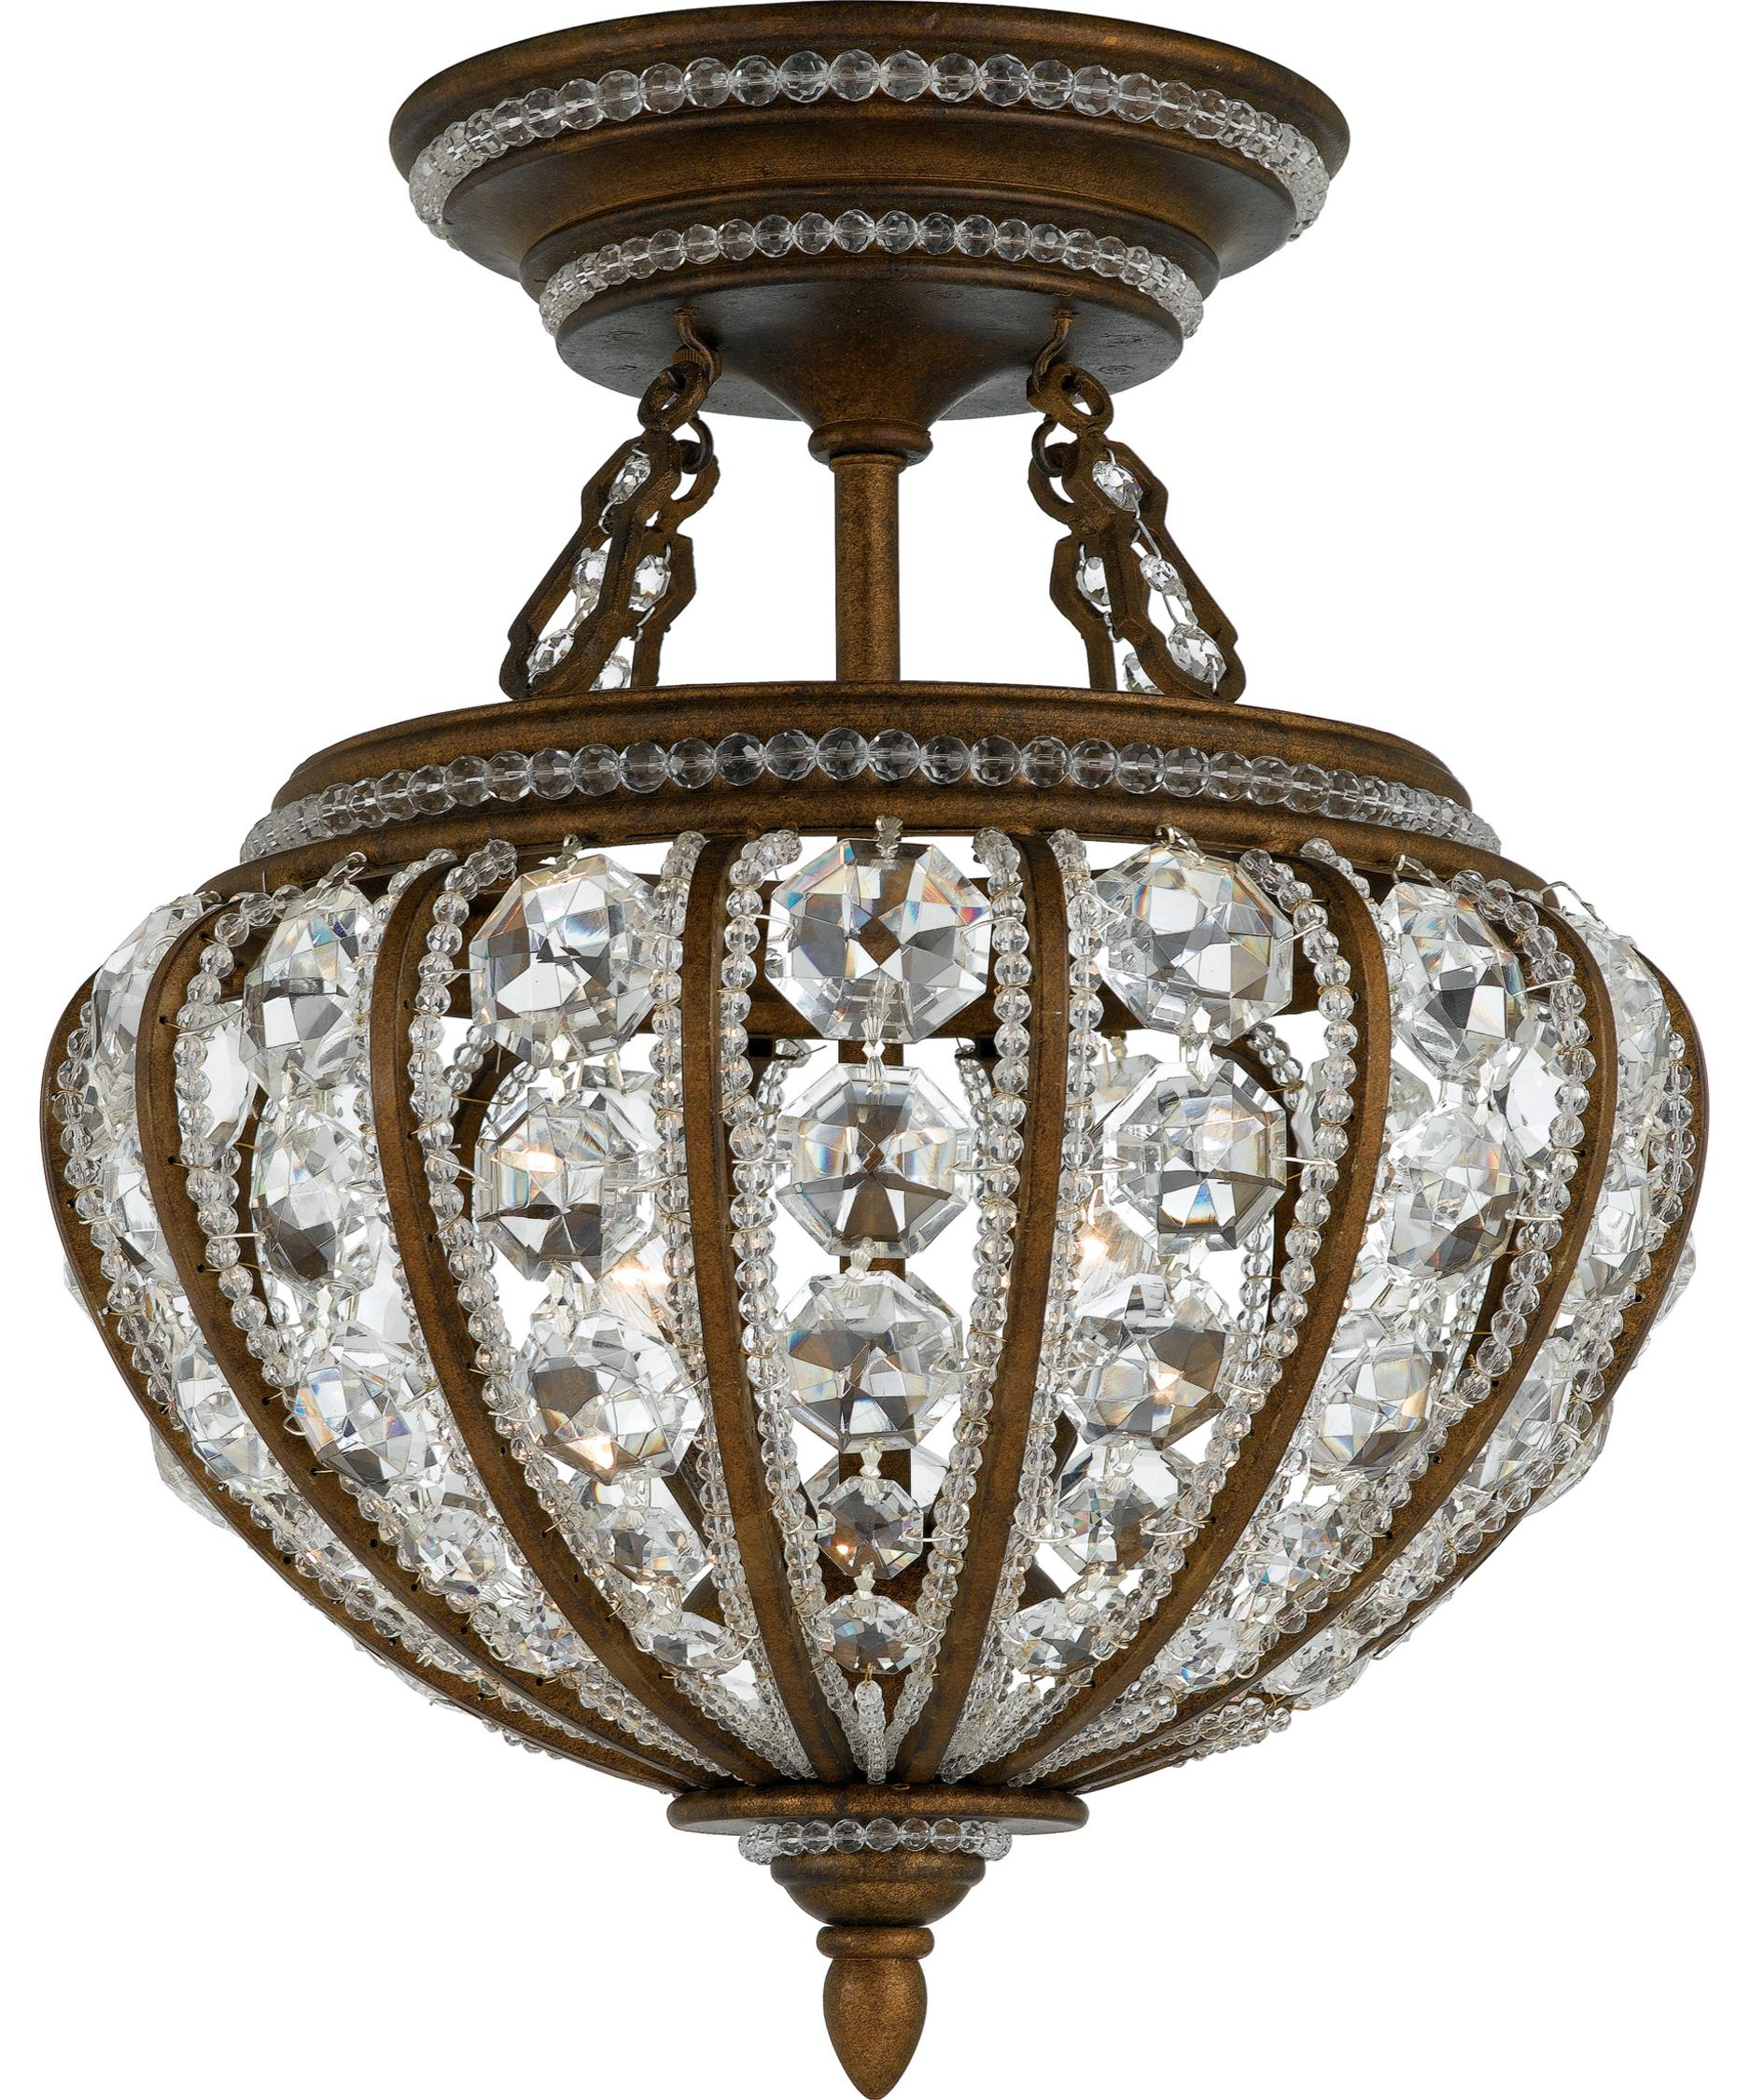 quoizel ep1720 empire 20 inch wide semi flush mount capitol lighting - Semi Flush Mount Lighting